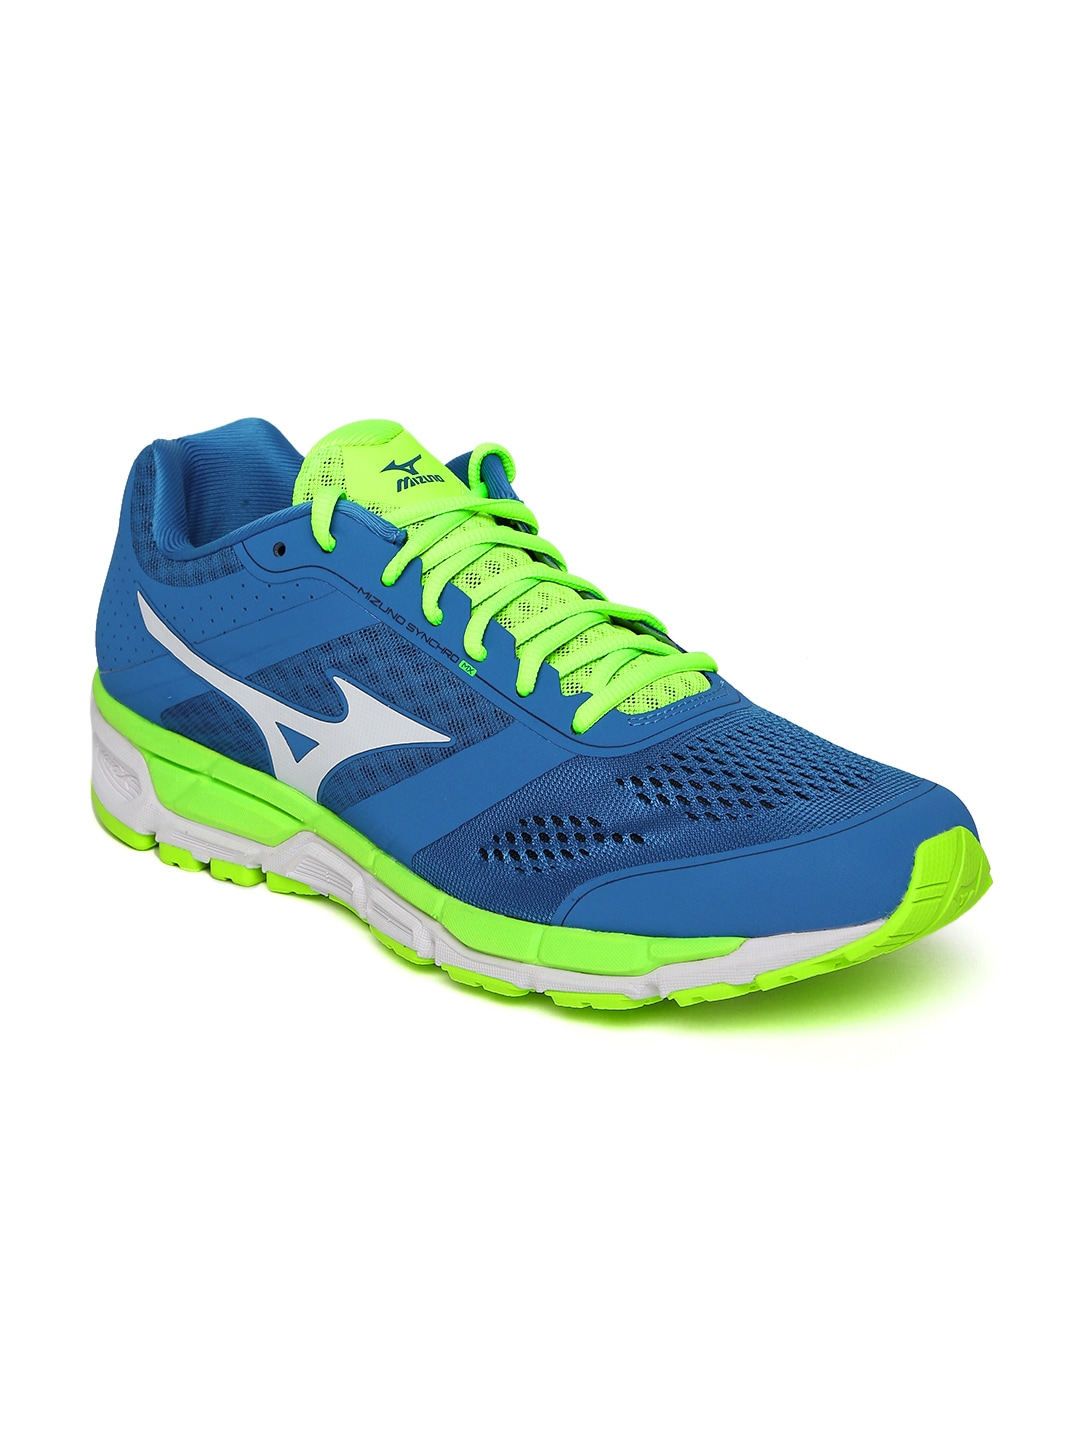 ba7762cf4f9e Mizuno Running Footwear - Buy Mizuno Running Footwear online in India